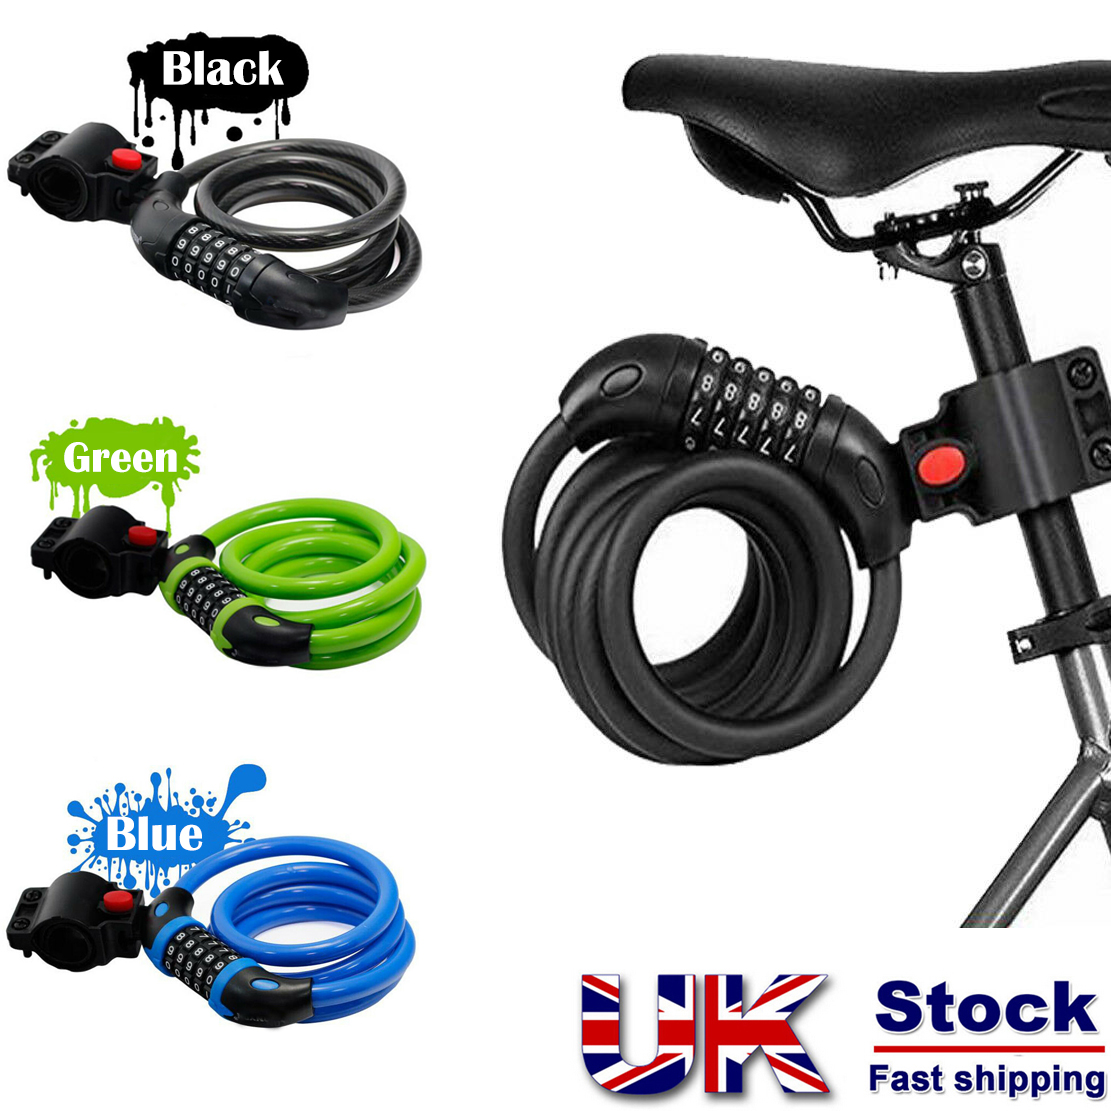 Combination Bike Lock Strong Heavy Duty Cycle Security Bicycle Locks H9C8